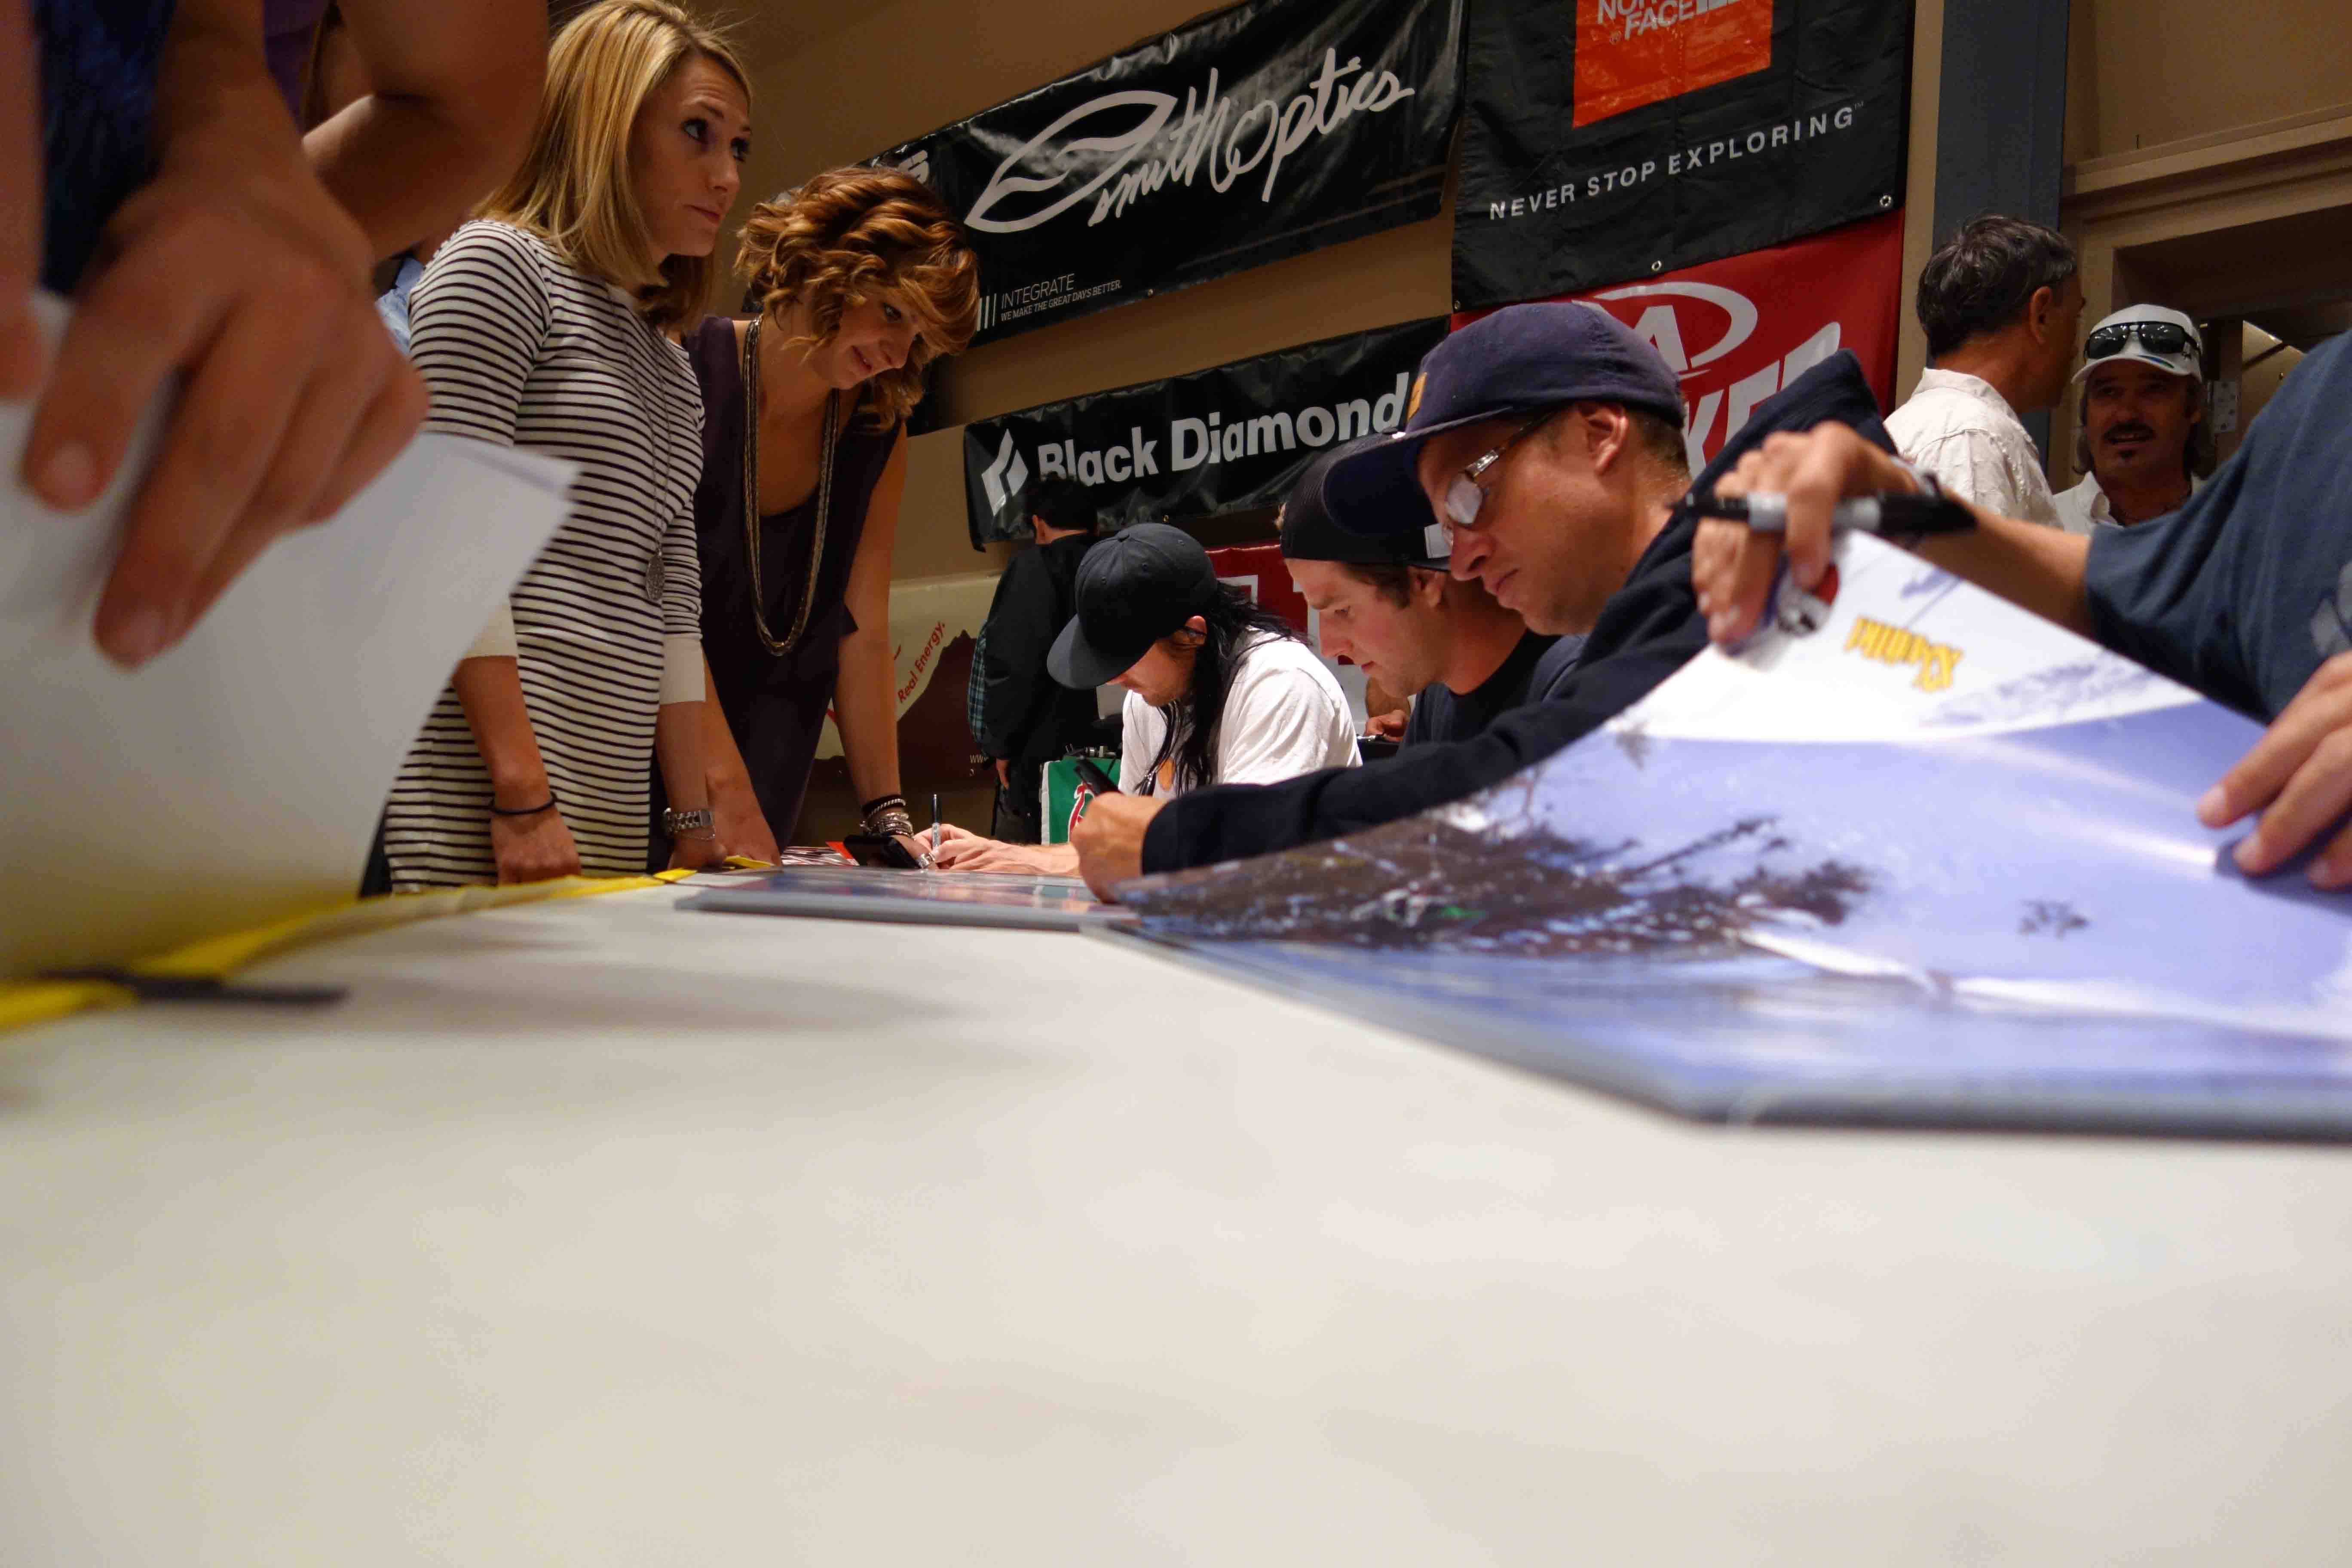 Seth Morrison, Dash Longe & Dylan Hood sign posters. Photo: Greg Fitzsimmons